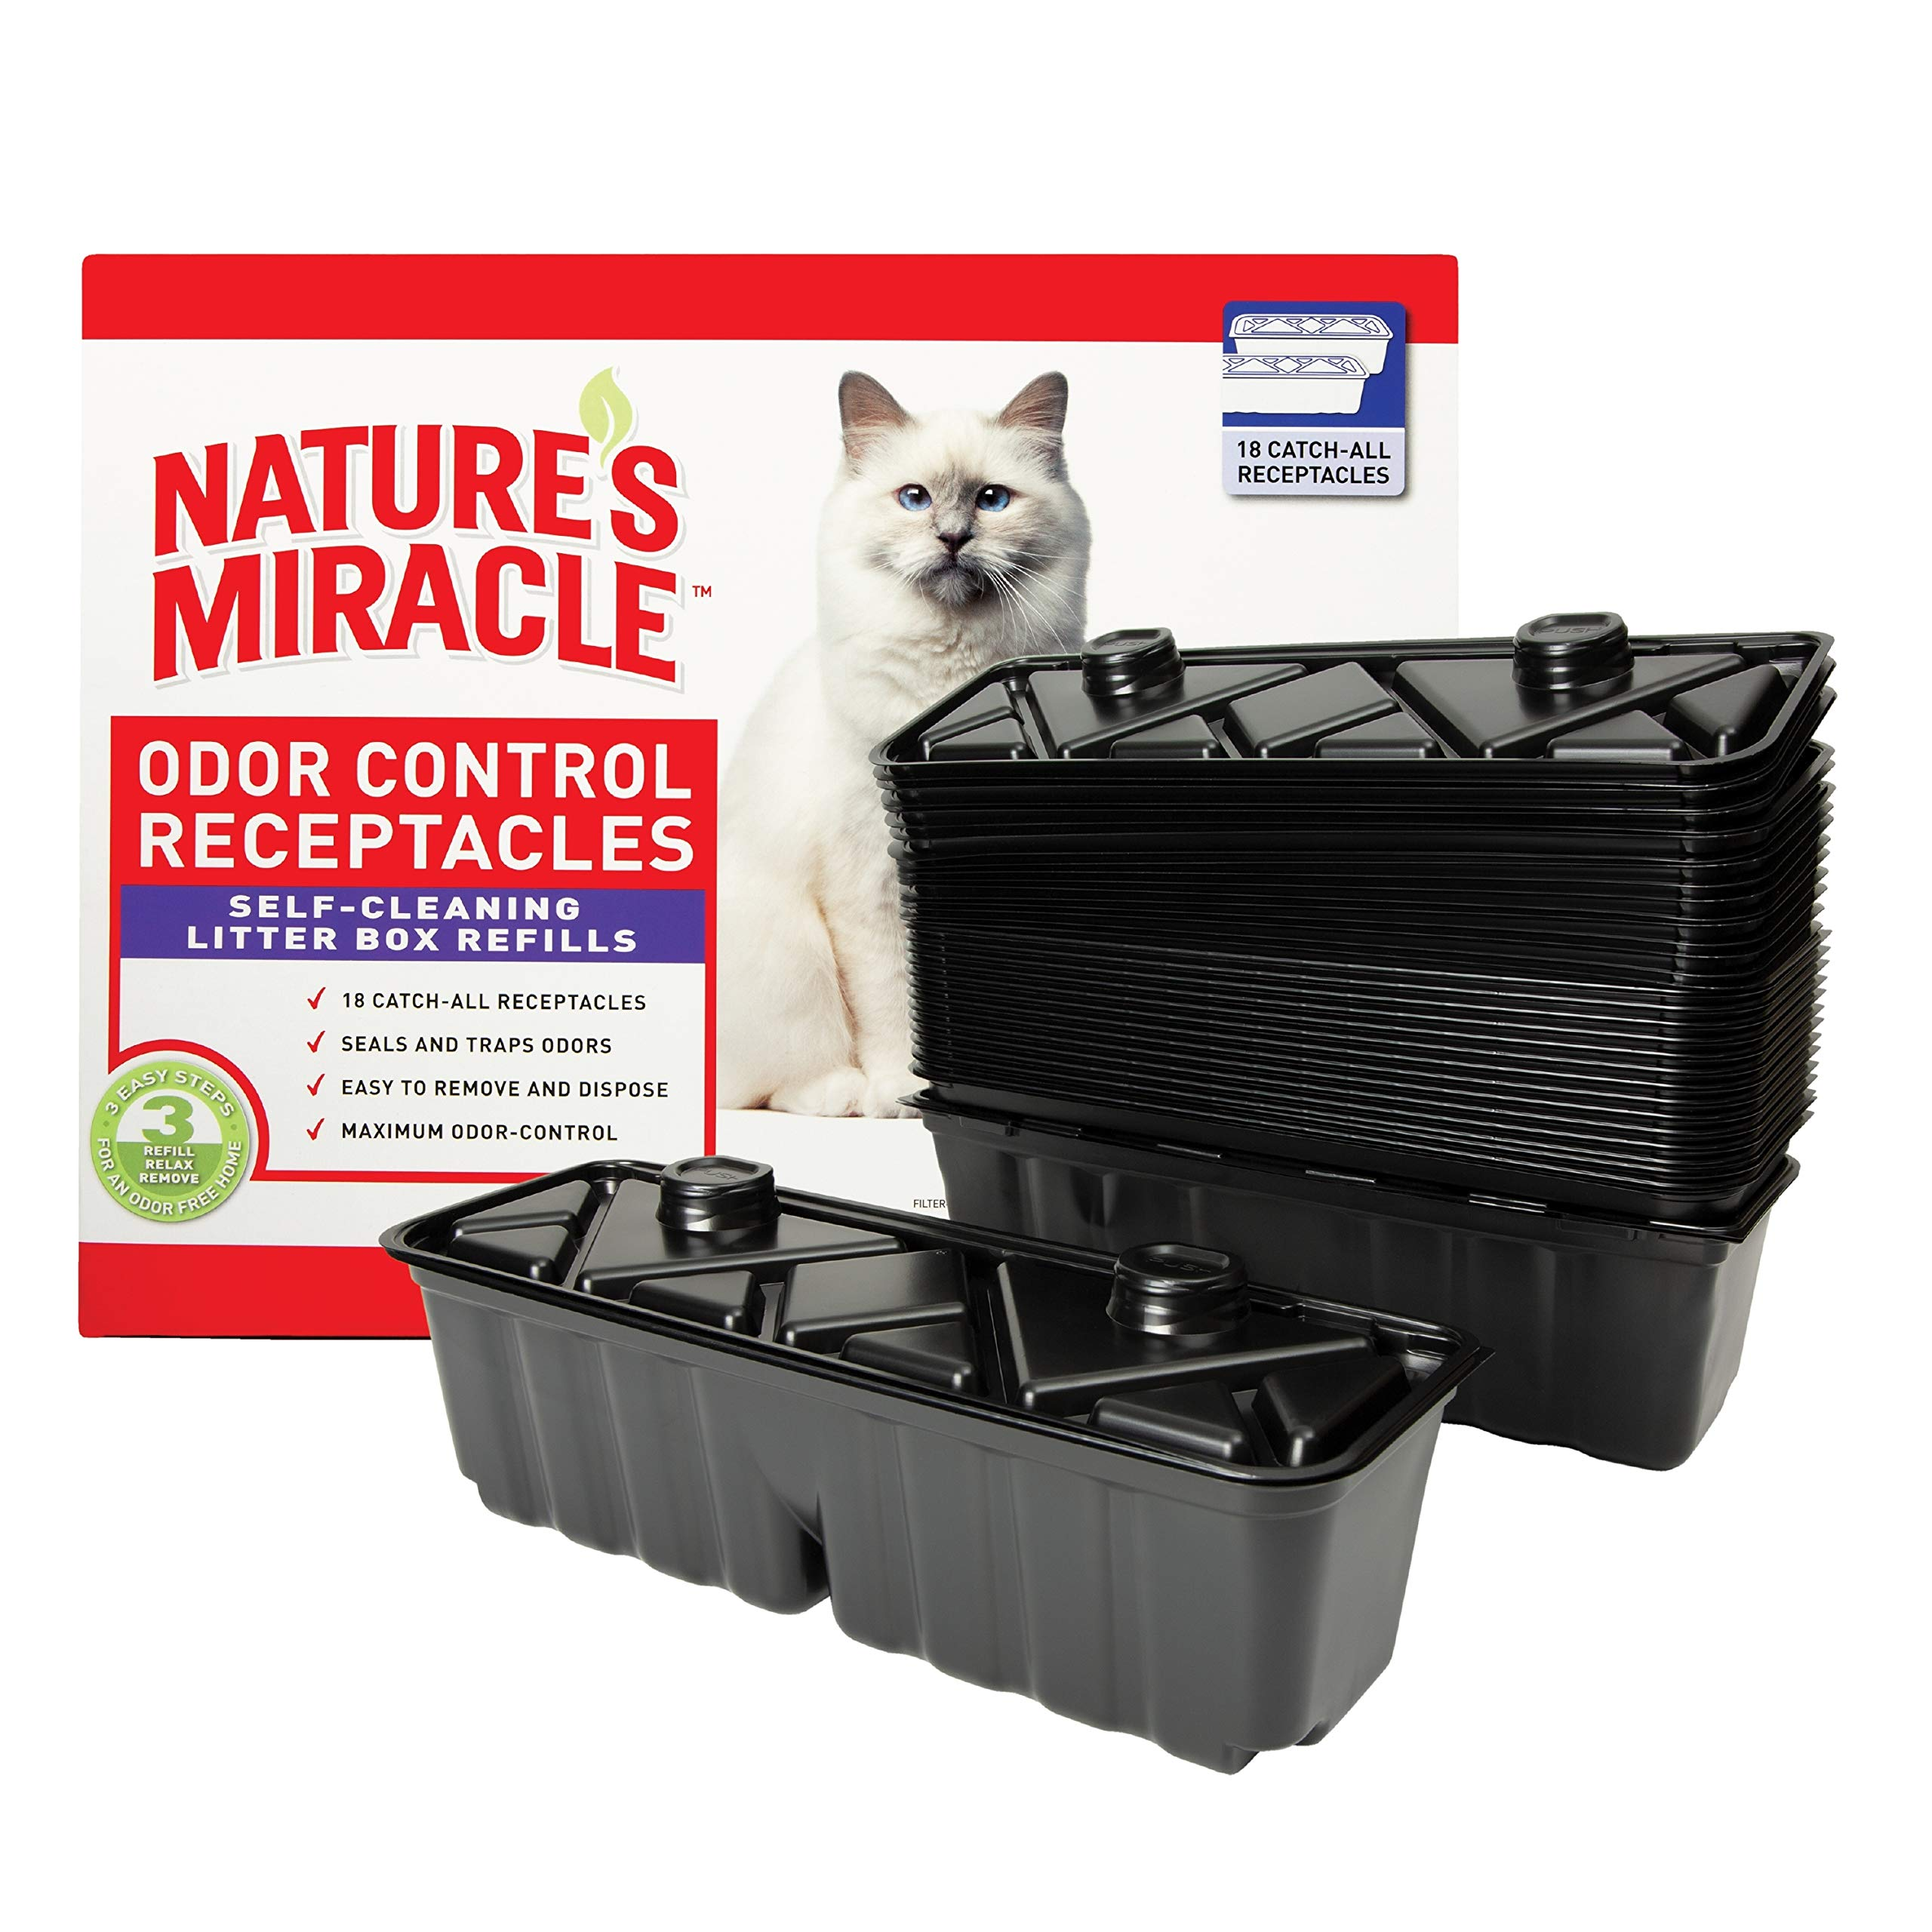 Nature's Miracle NMR300 Waste Receptacles (18 Pack) by Nature's Miracle